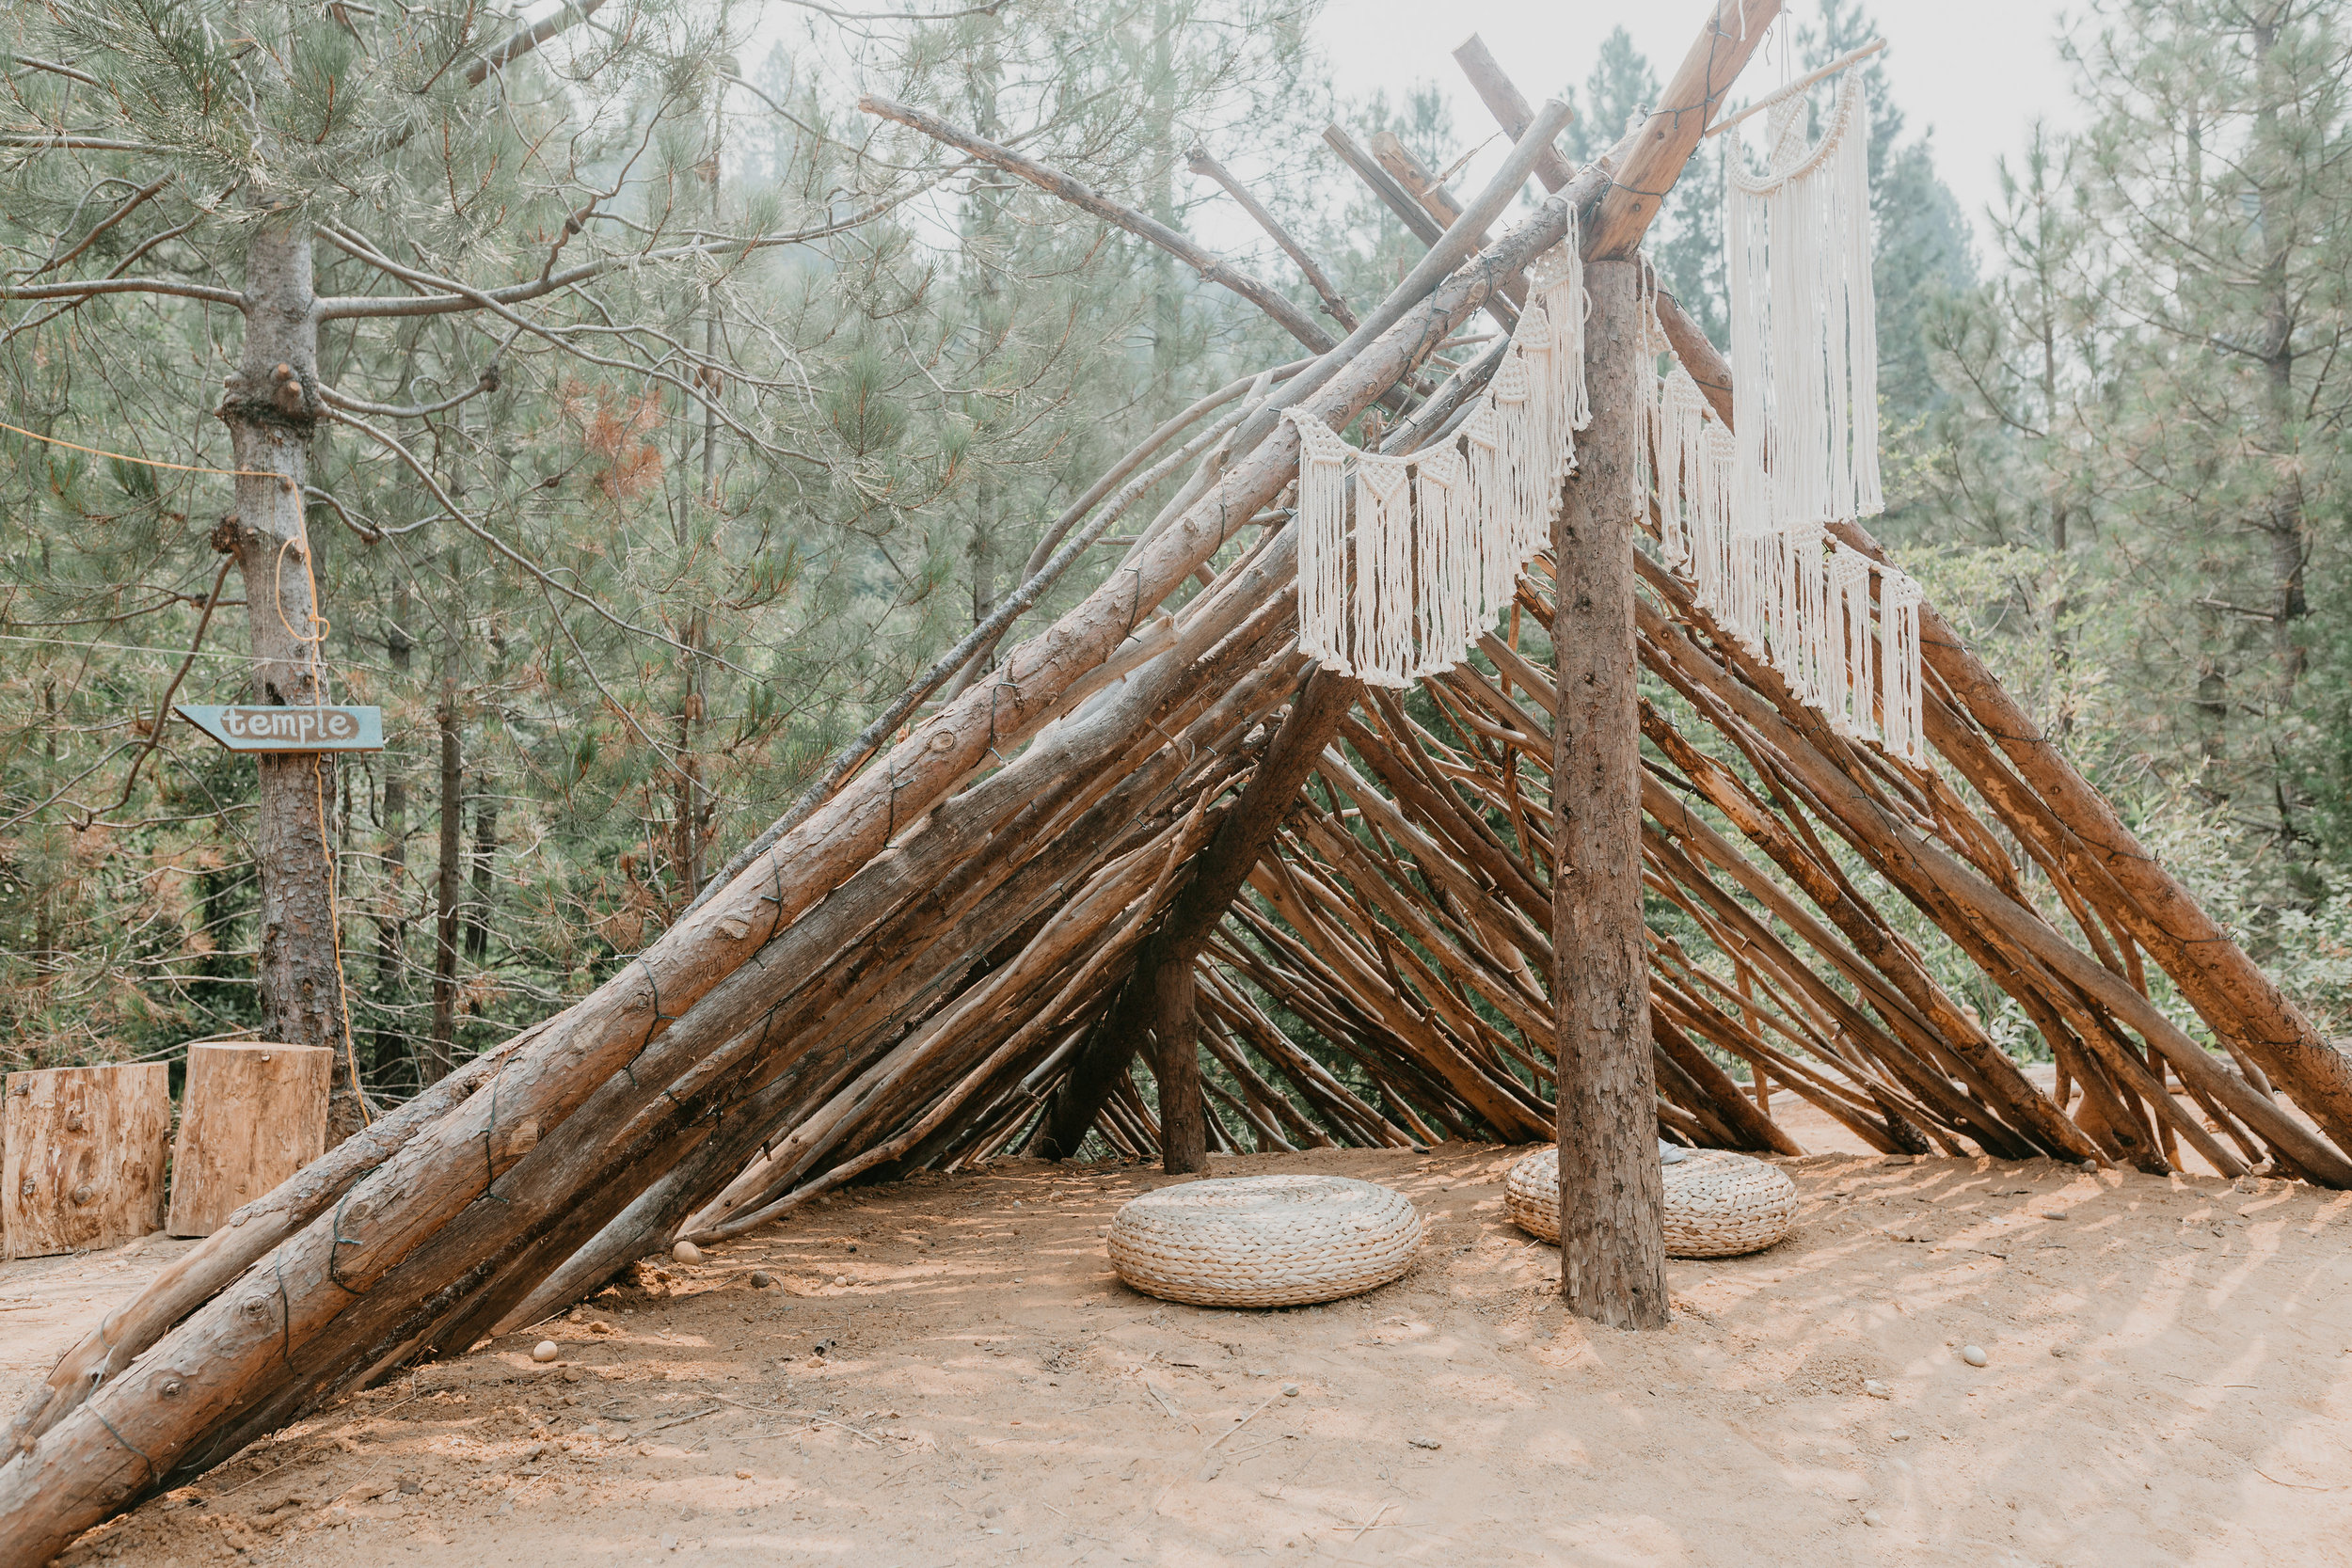 sacred spaces - This peaceful forest land holds sweet, lush space for all. Our manmade spaces throughout the land bring some comfort to help you integrate being in the elements of wild nature.